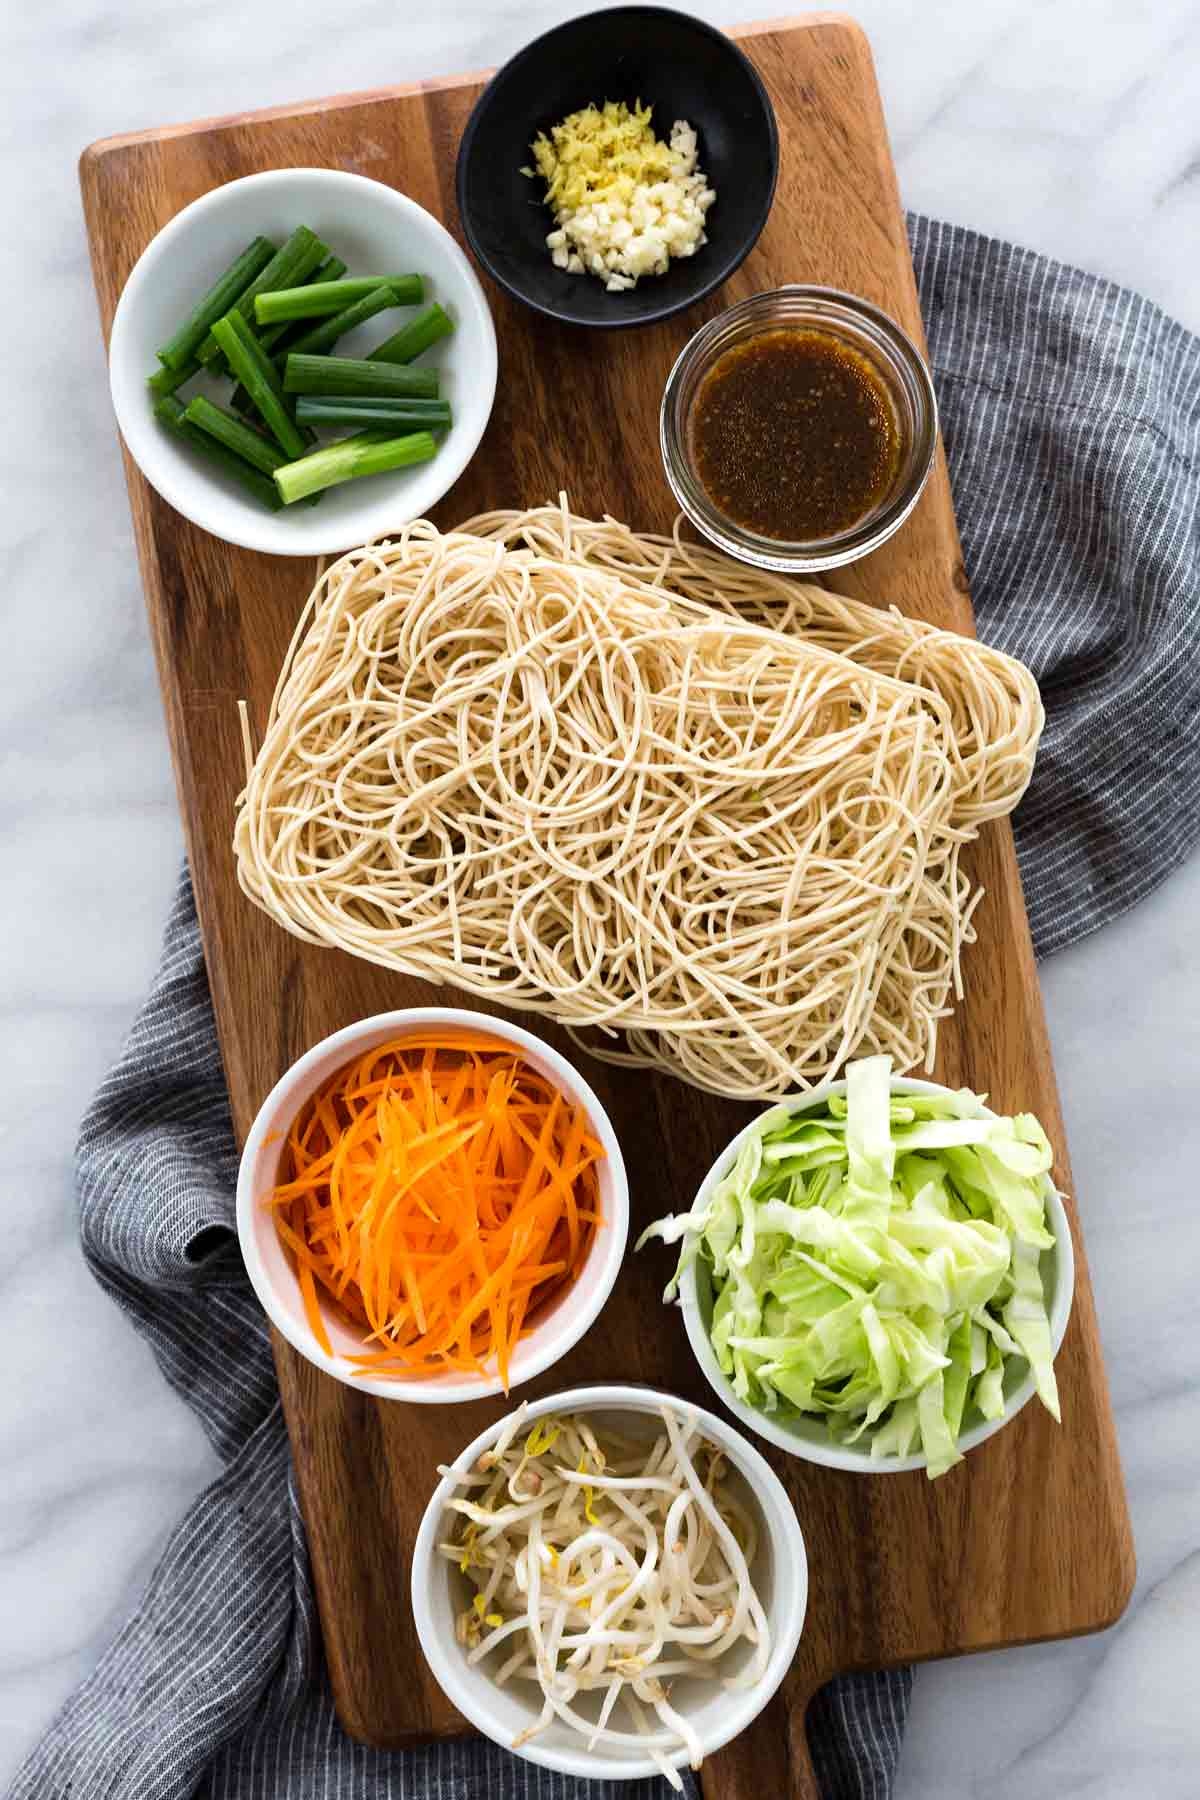 Pre-portioned chow mein ingredients on a wooden board